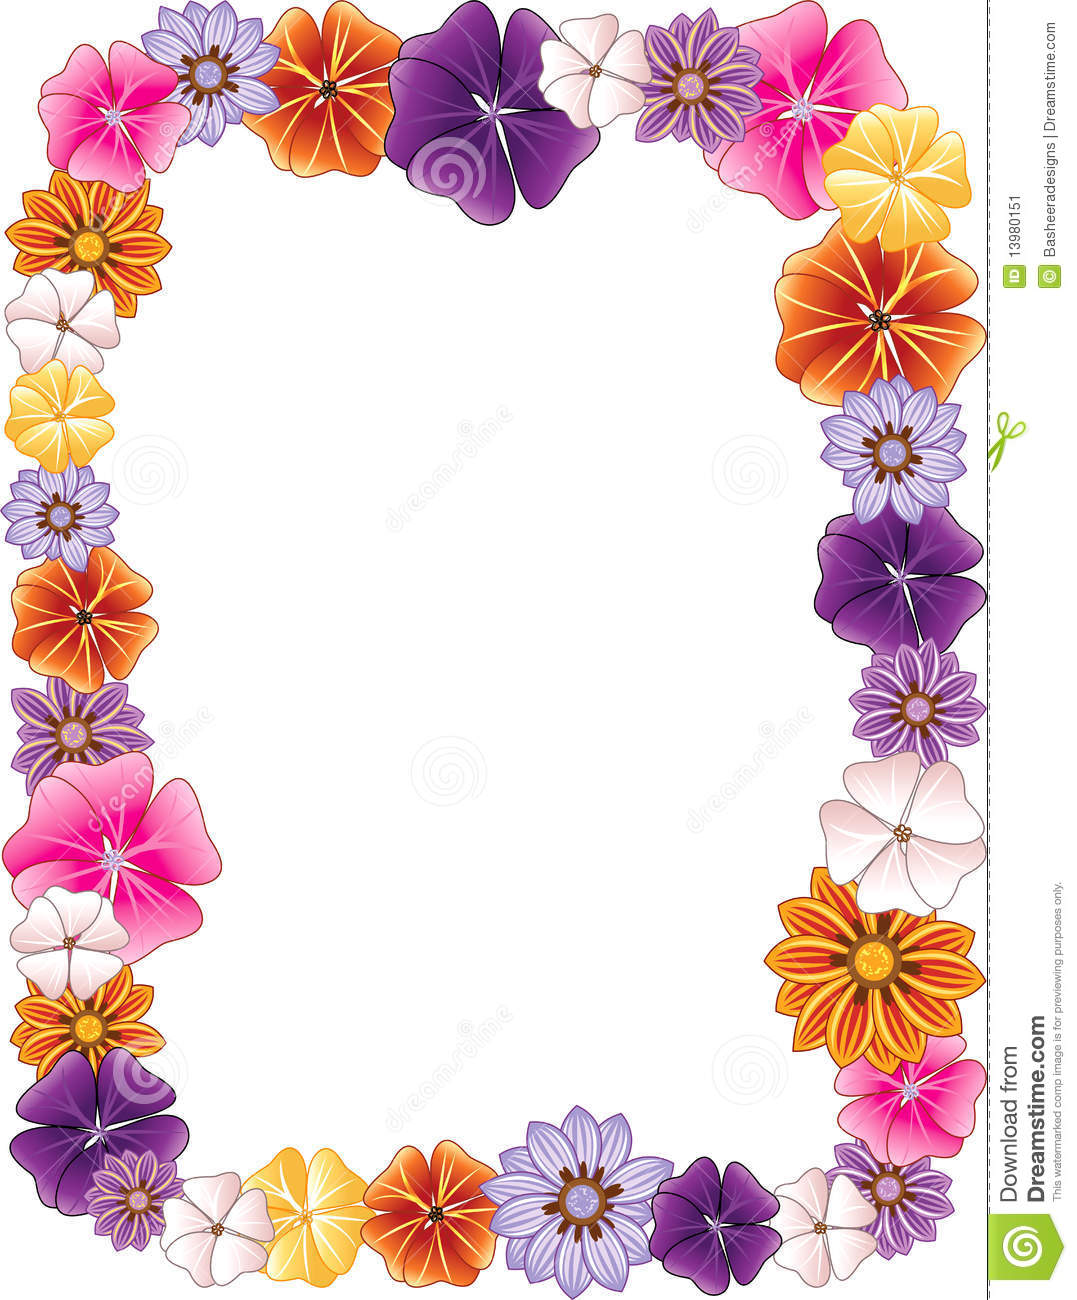 Tulip Clipart Border | Free download on ClipArtMag Tulips Border Clipart